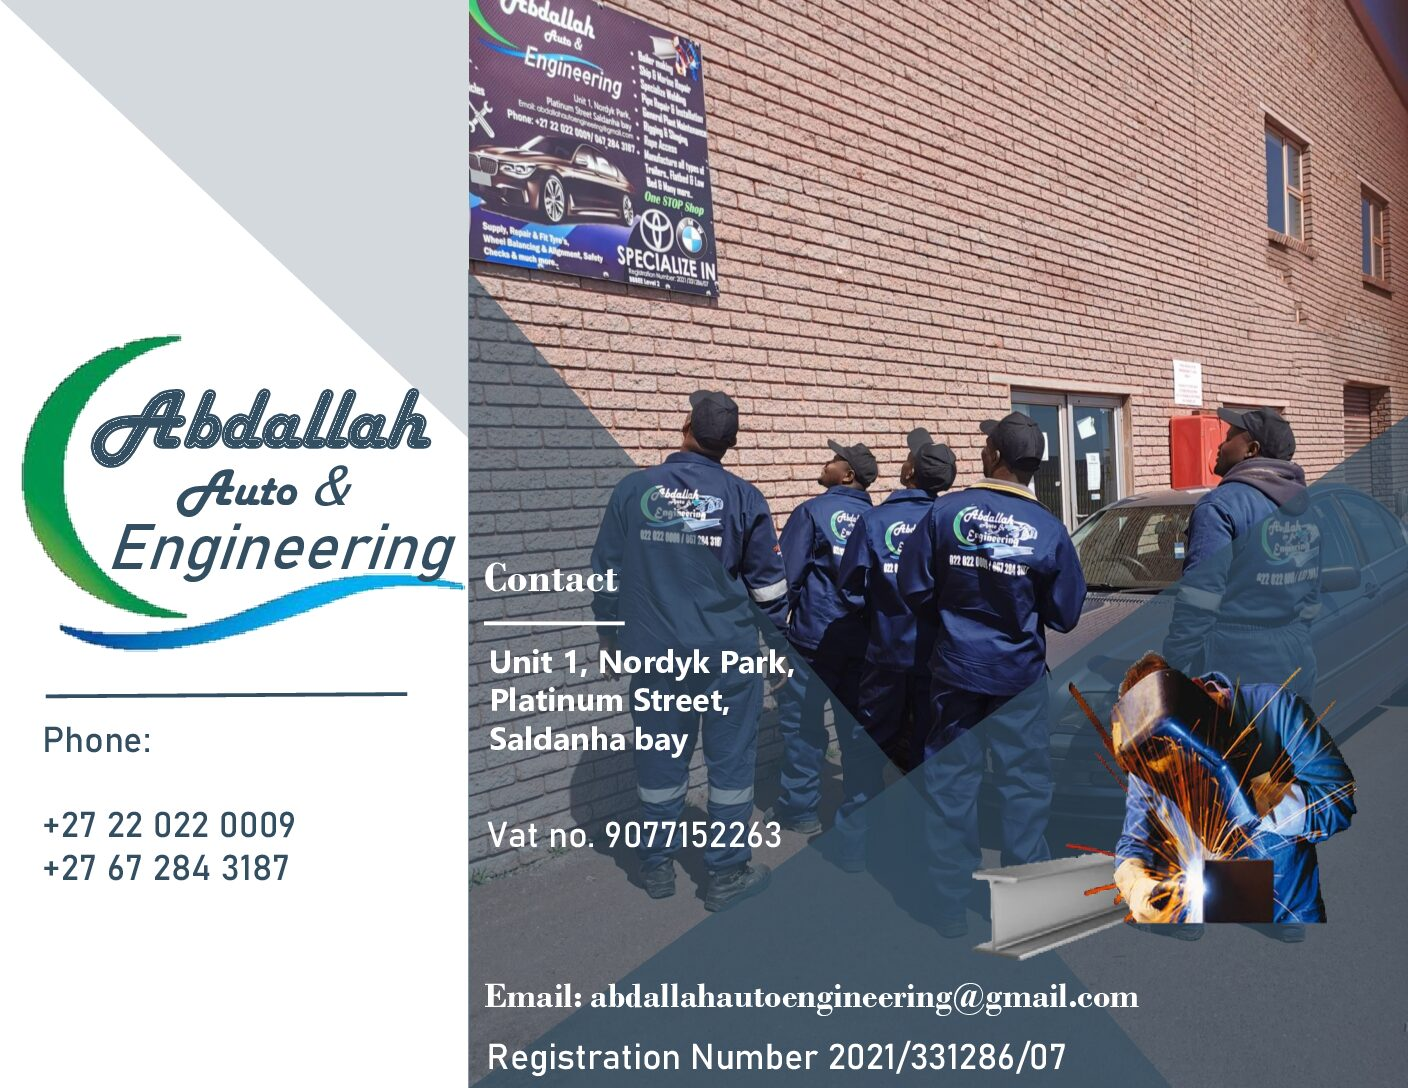 Business Listing for Abdallah Auto Engineering Pty Ltd